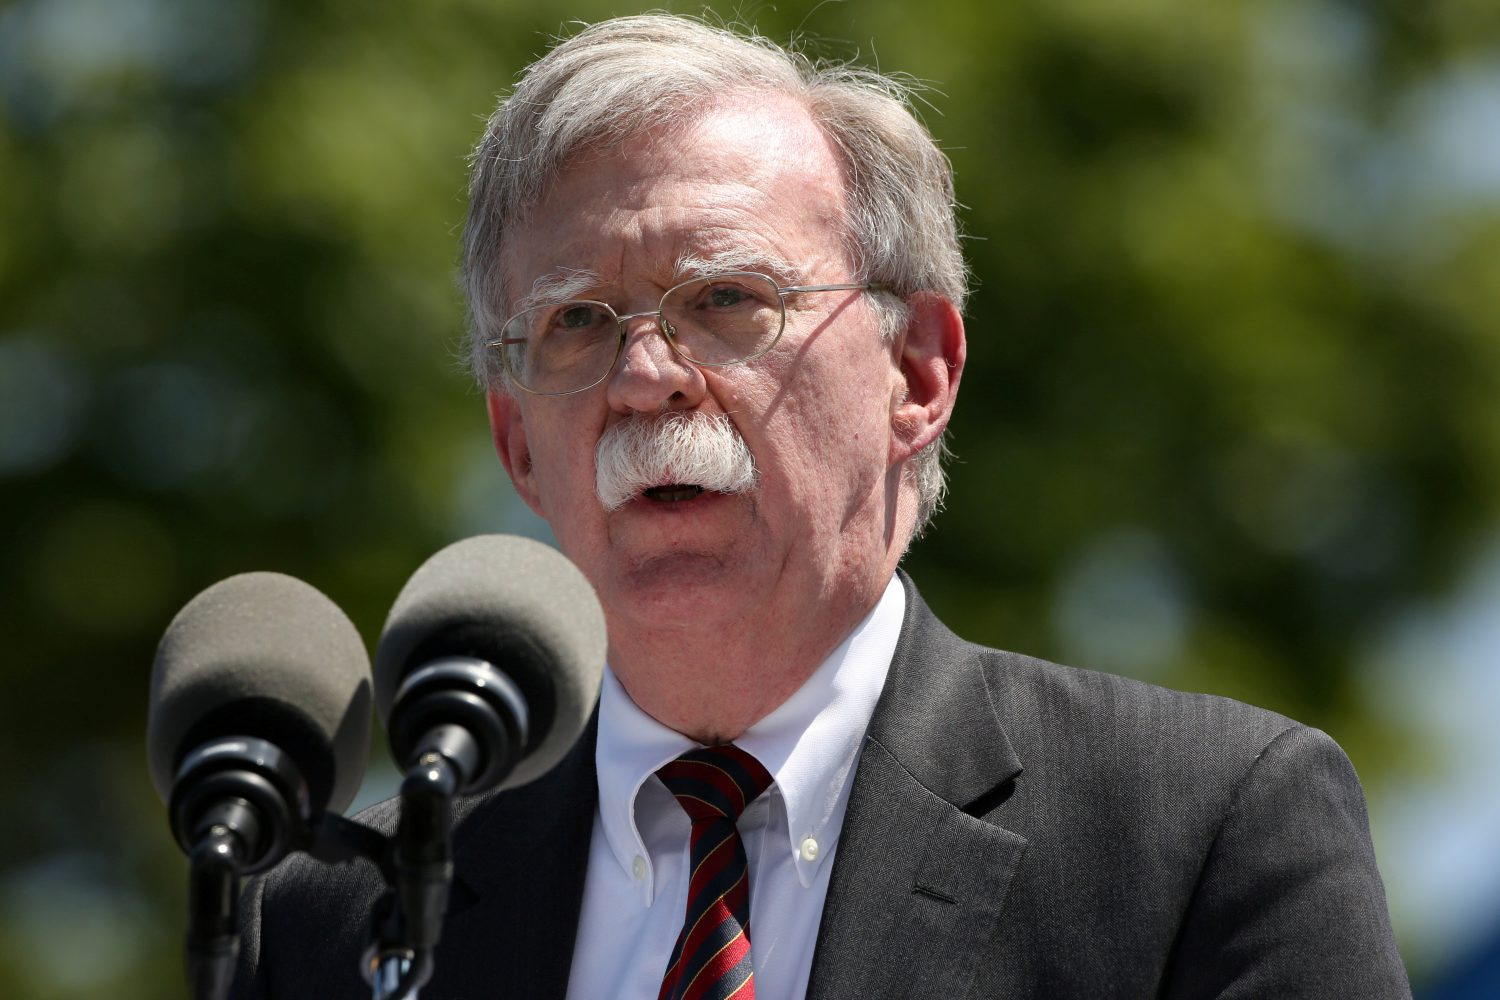 FILE PHOTO: U.S. National Security Advisor John Bolton speaks during a graduation ceremony at the U.S. Coast Guard Academy in New London, Connecticut, U.S., May 22, 2019. REUTERS/Michelle McLoughlin